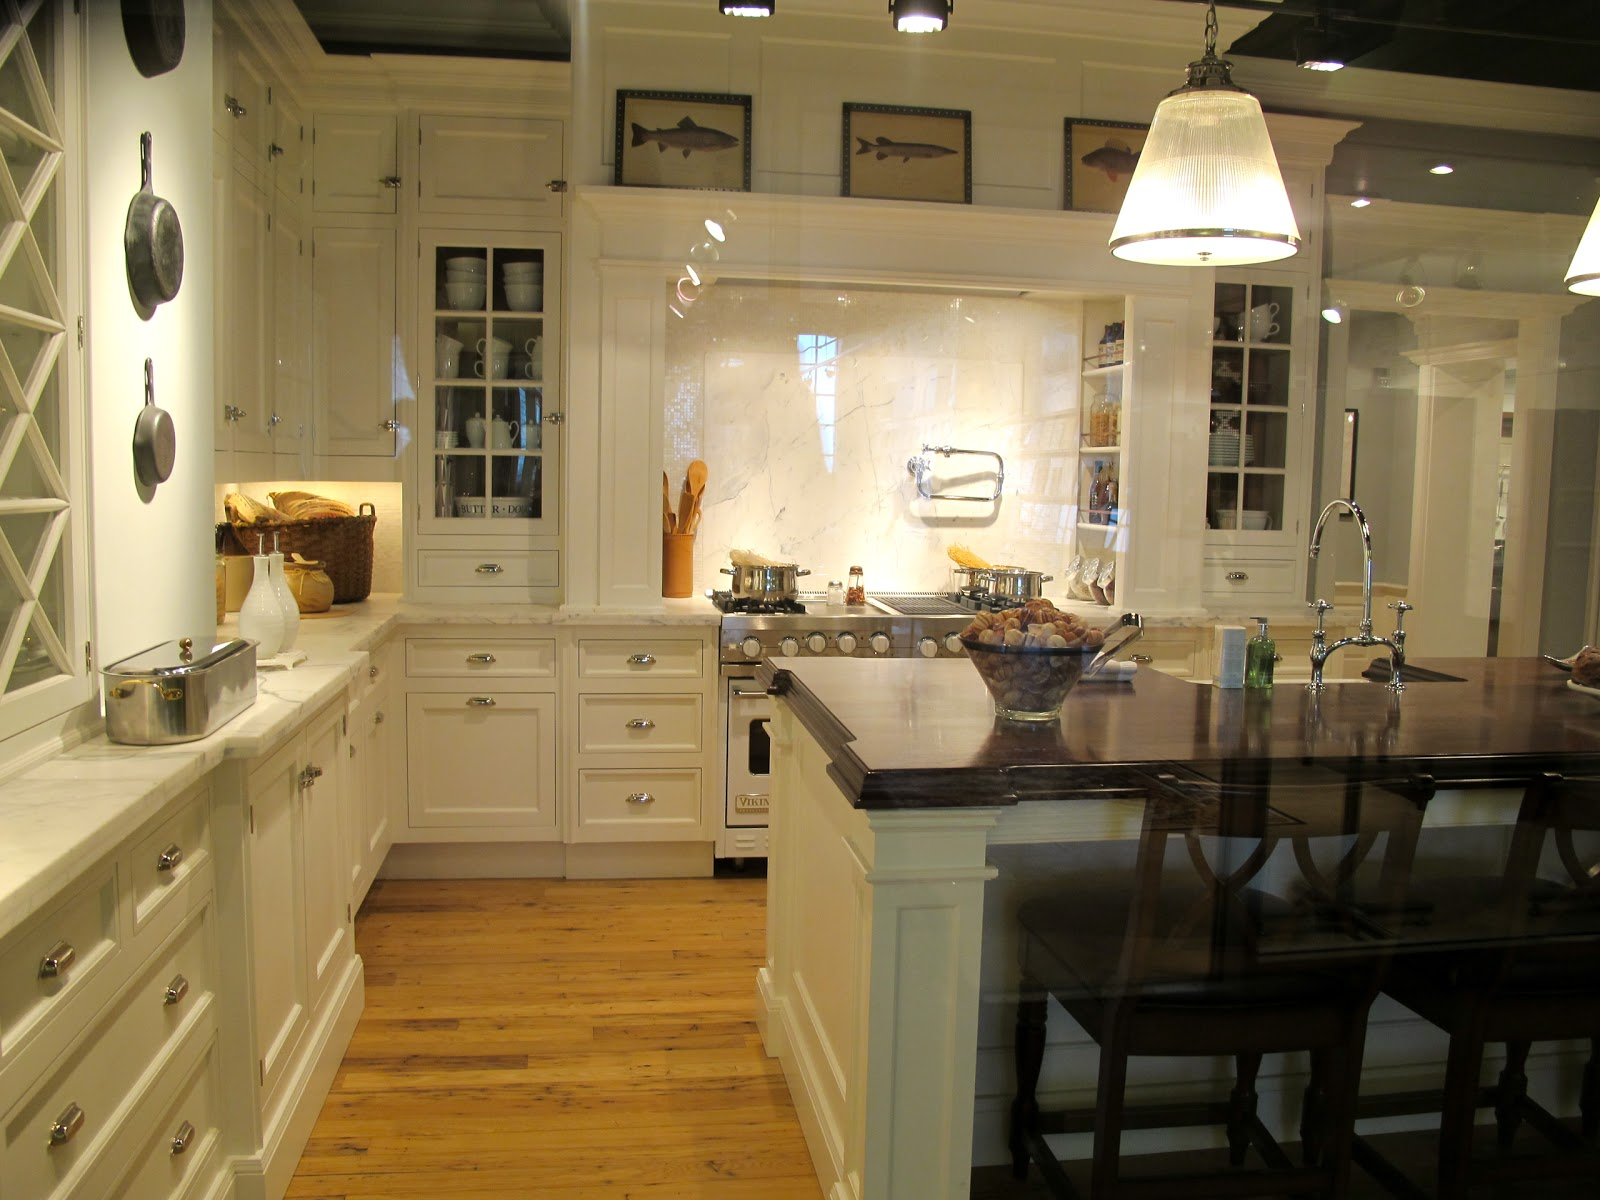 Amazing Kitchen Designs Of Jenny Steffens Hobick Kitchens The Most Amazing